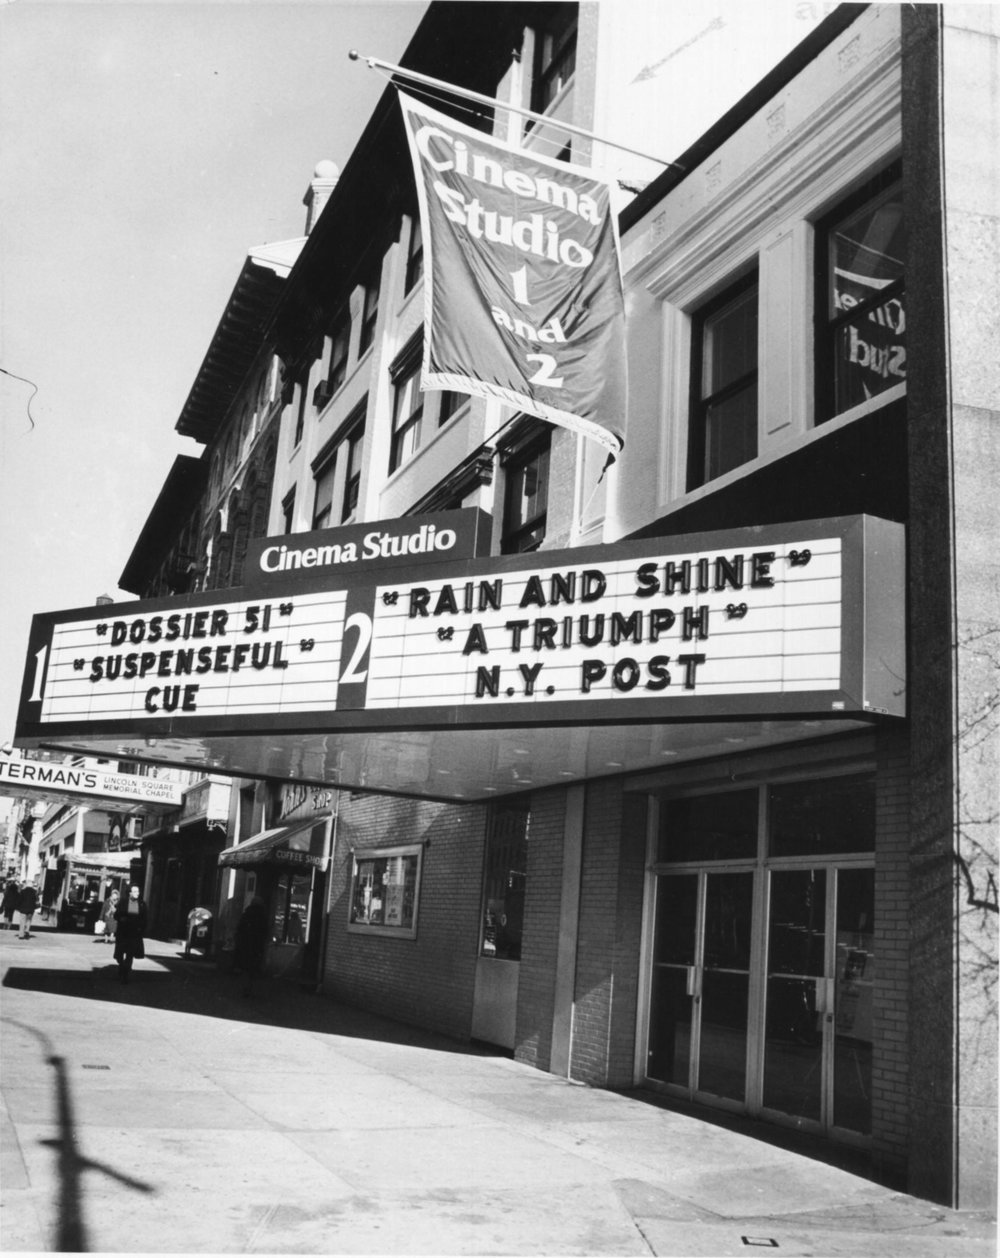 The Cinema Studio theater, which Dan Talbot managed from 1977 to 1990.